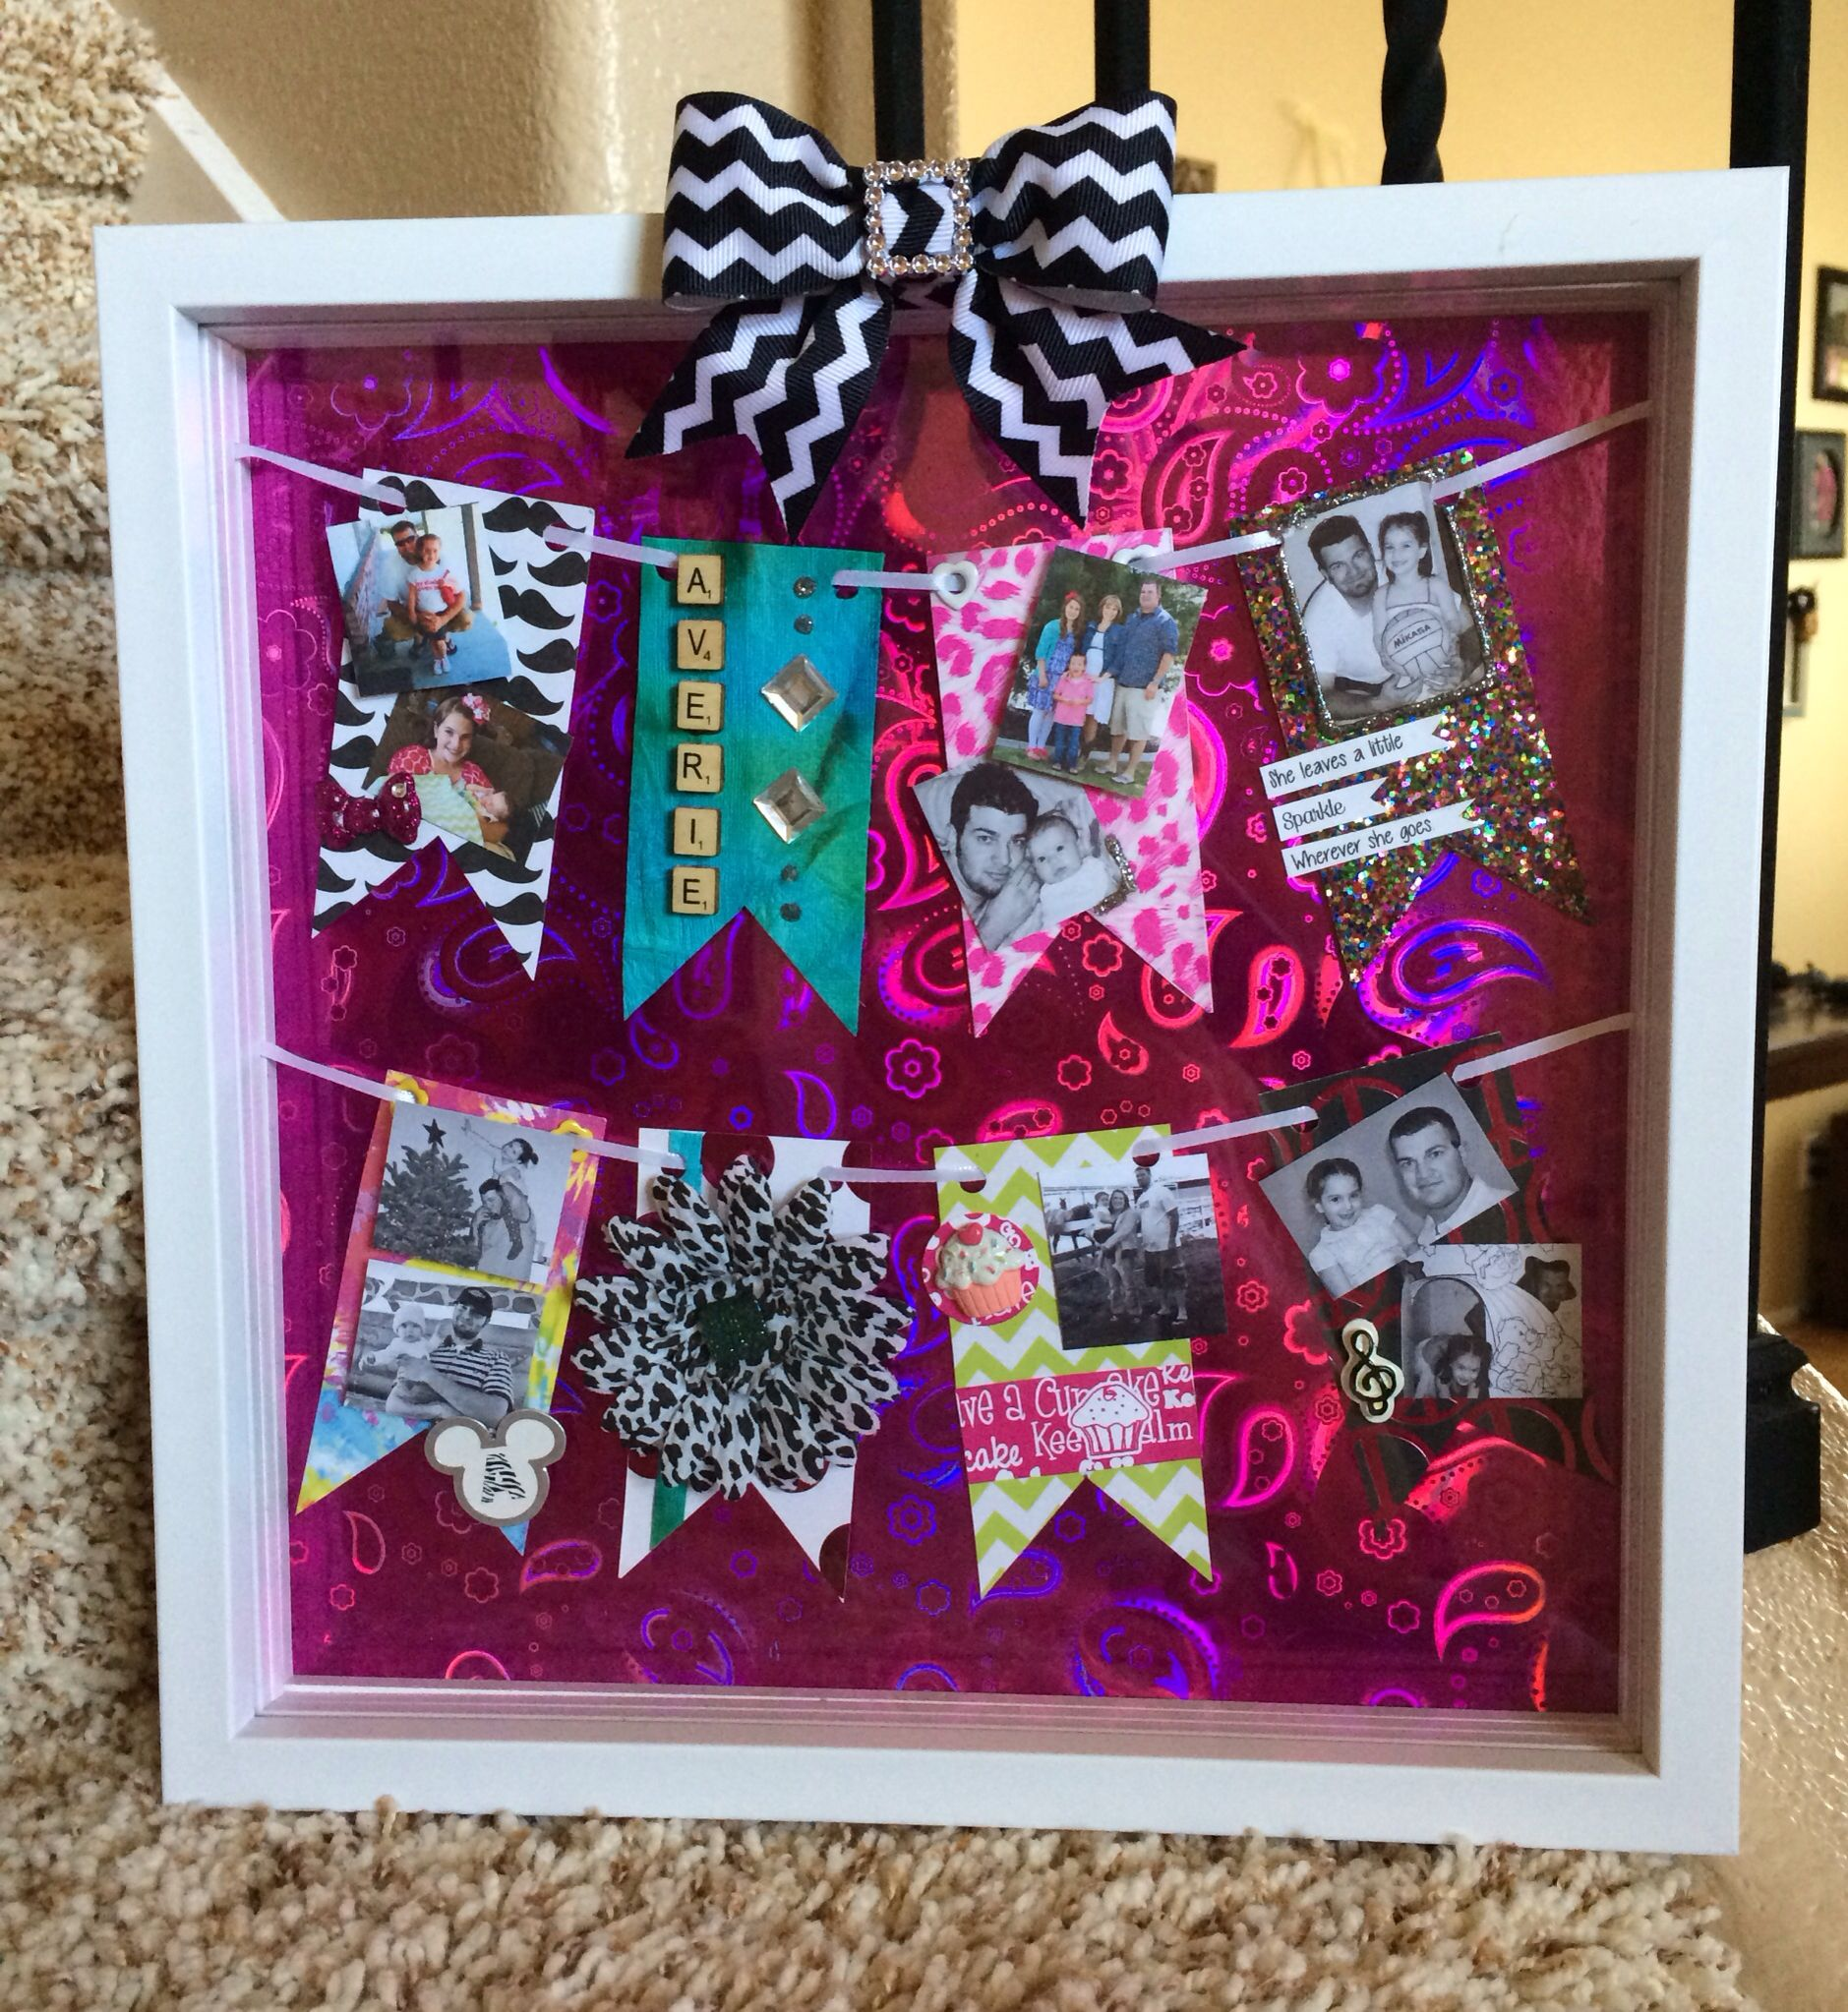 Hangingpendant photo shadow box for my stepdaughter